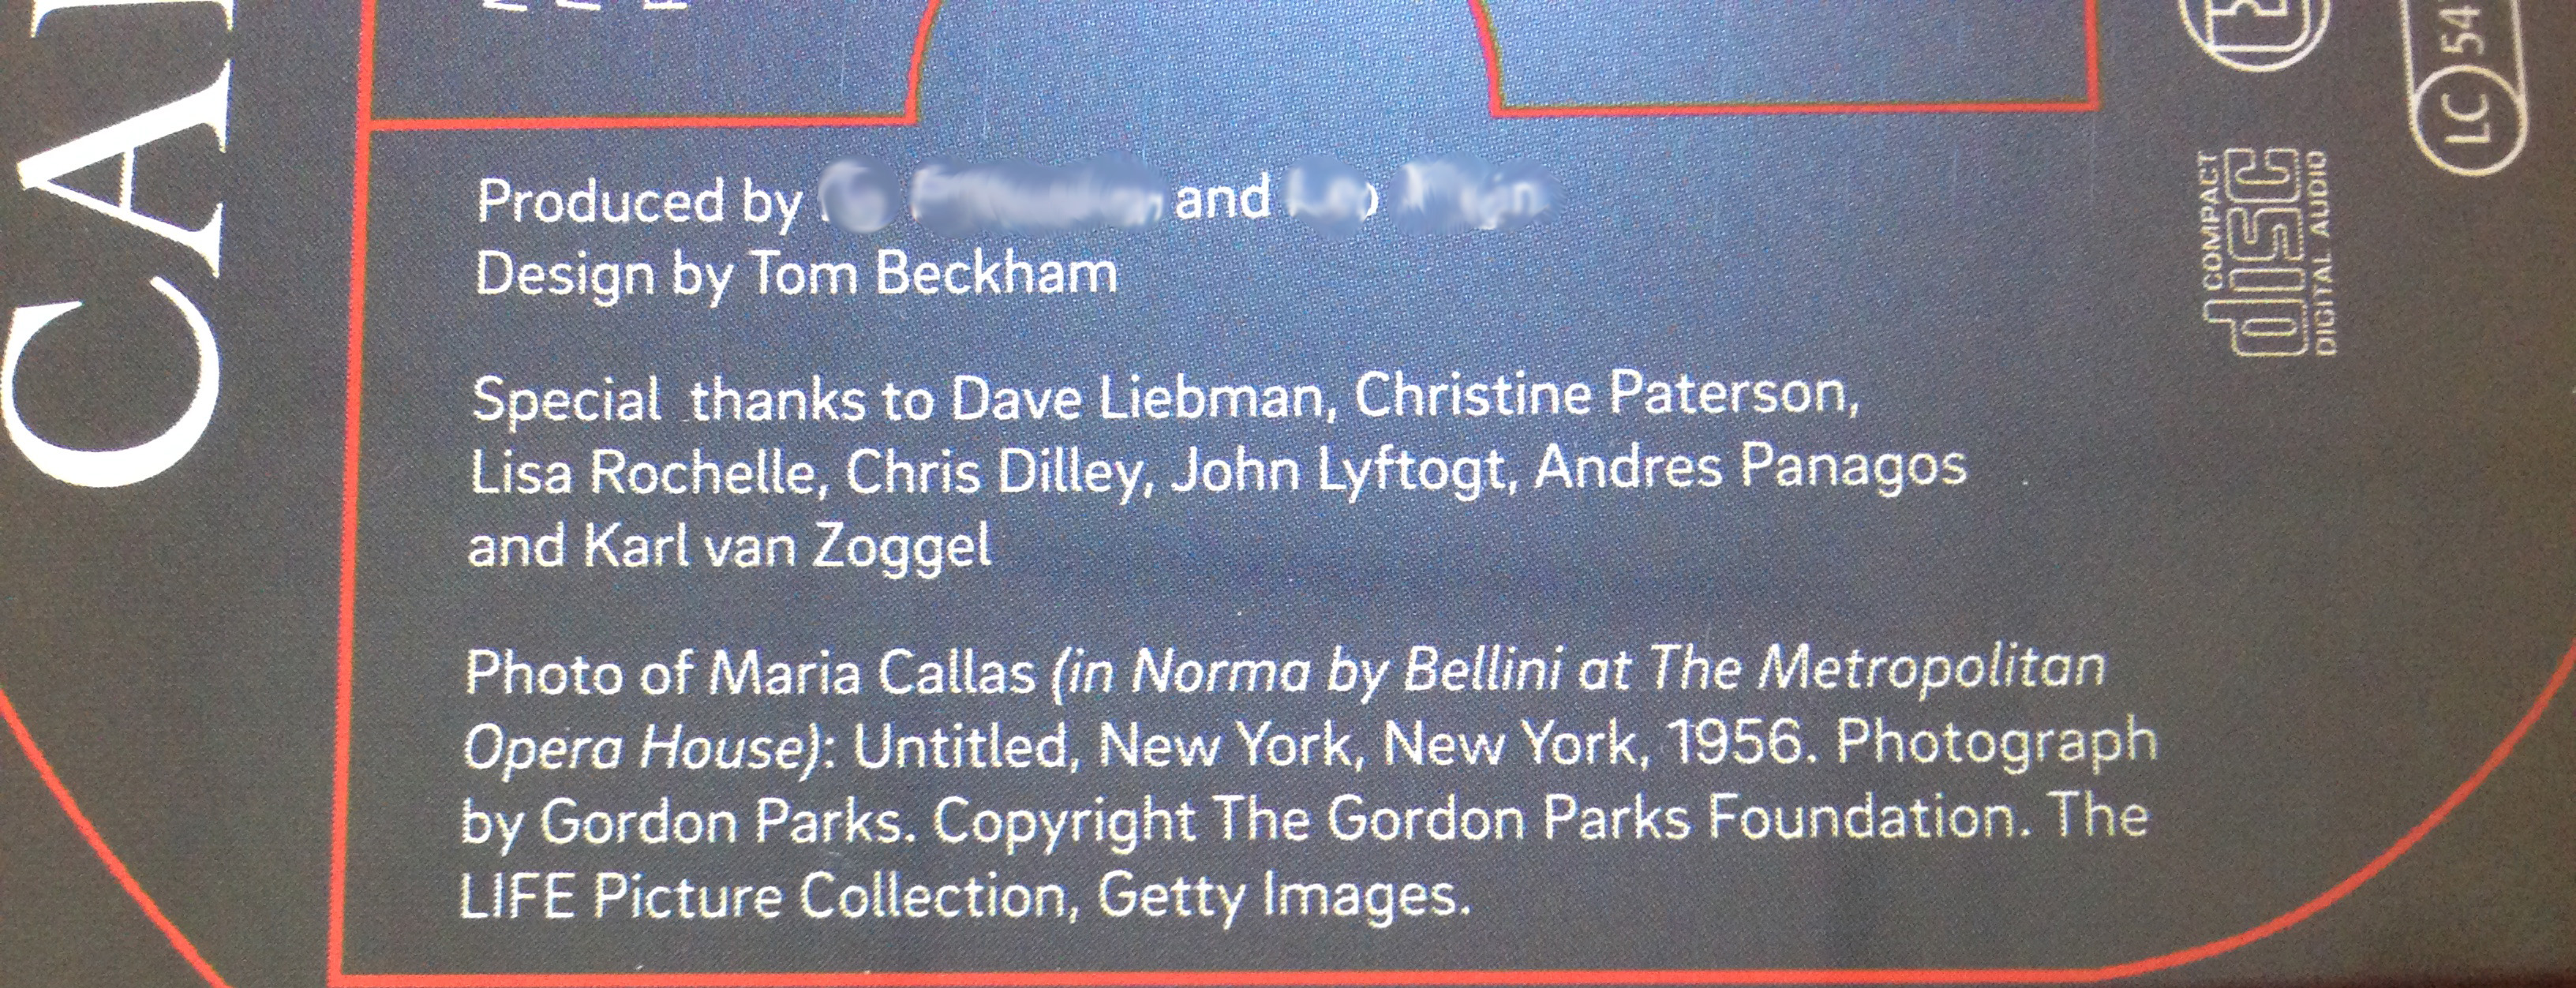 Ivo Perelman special thanks CD listing anonymous